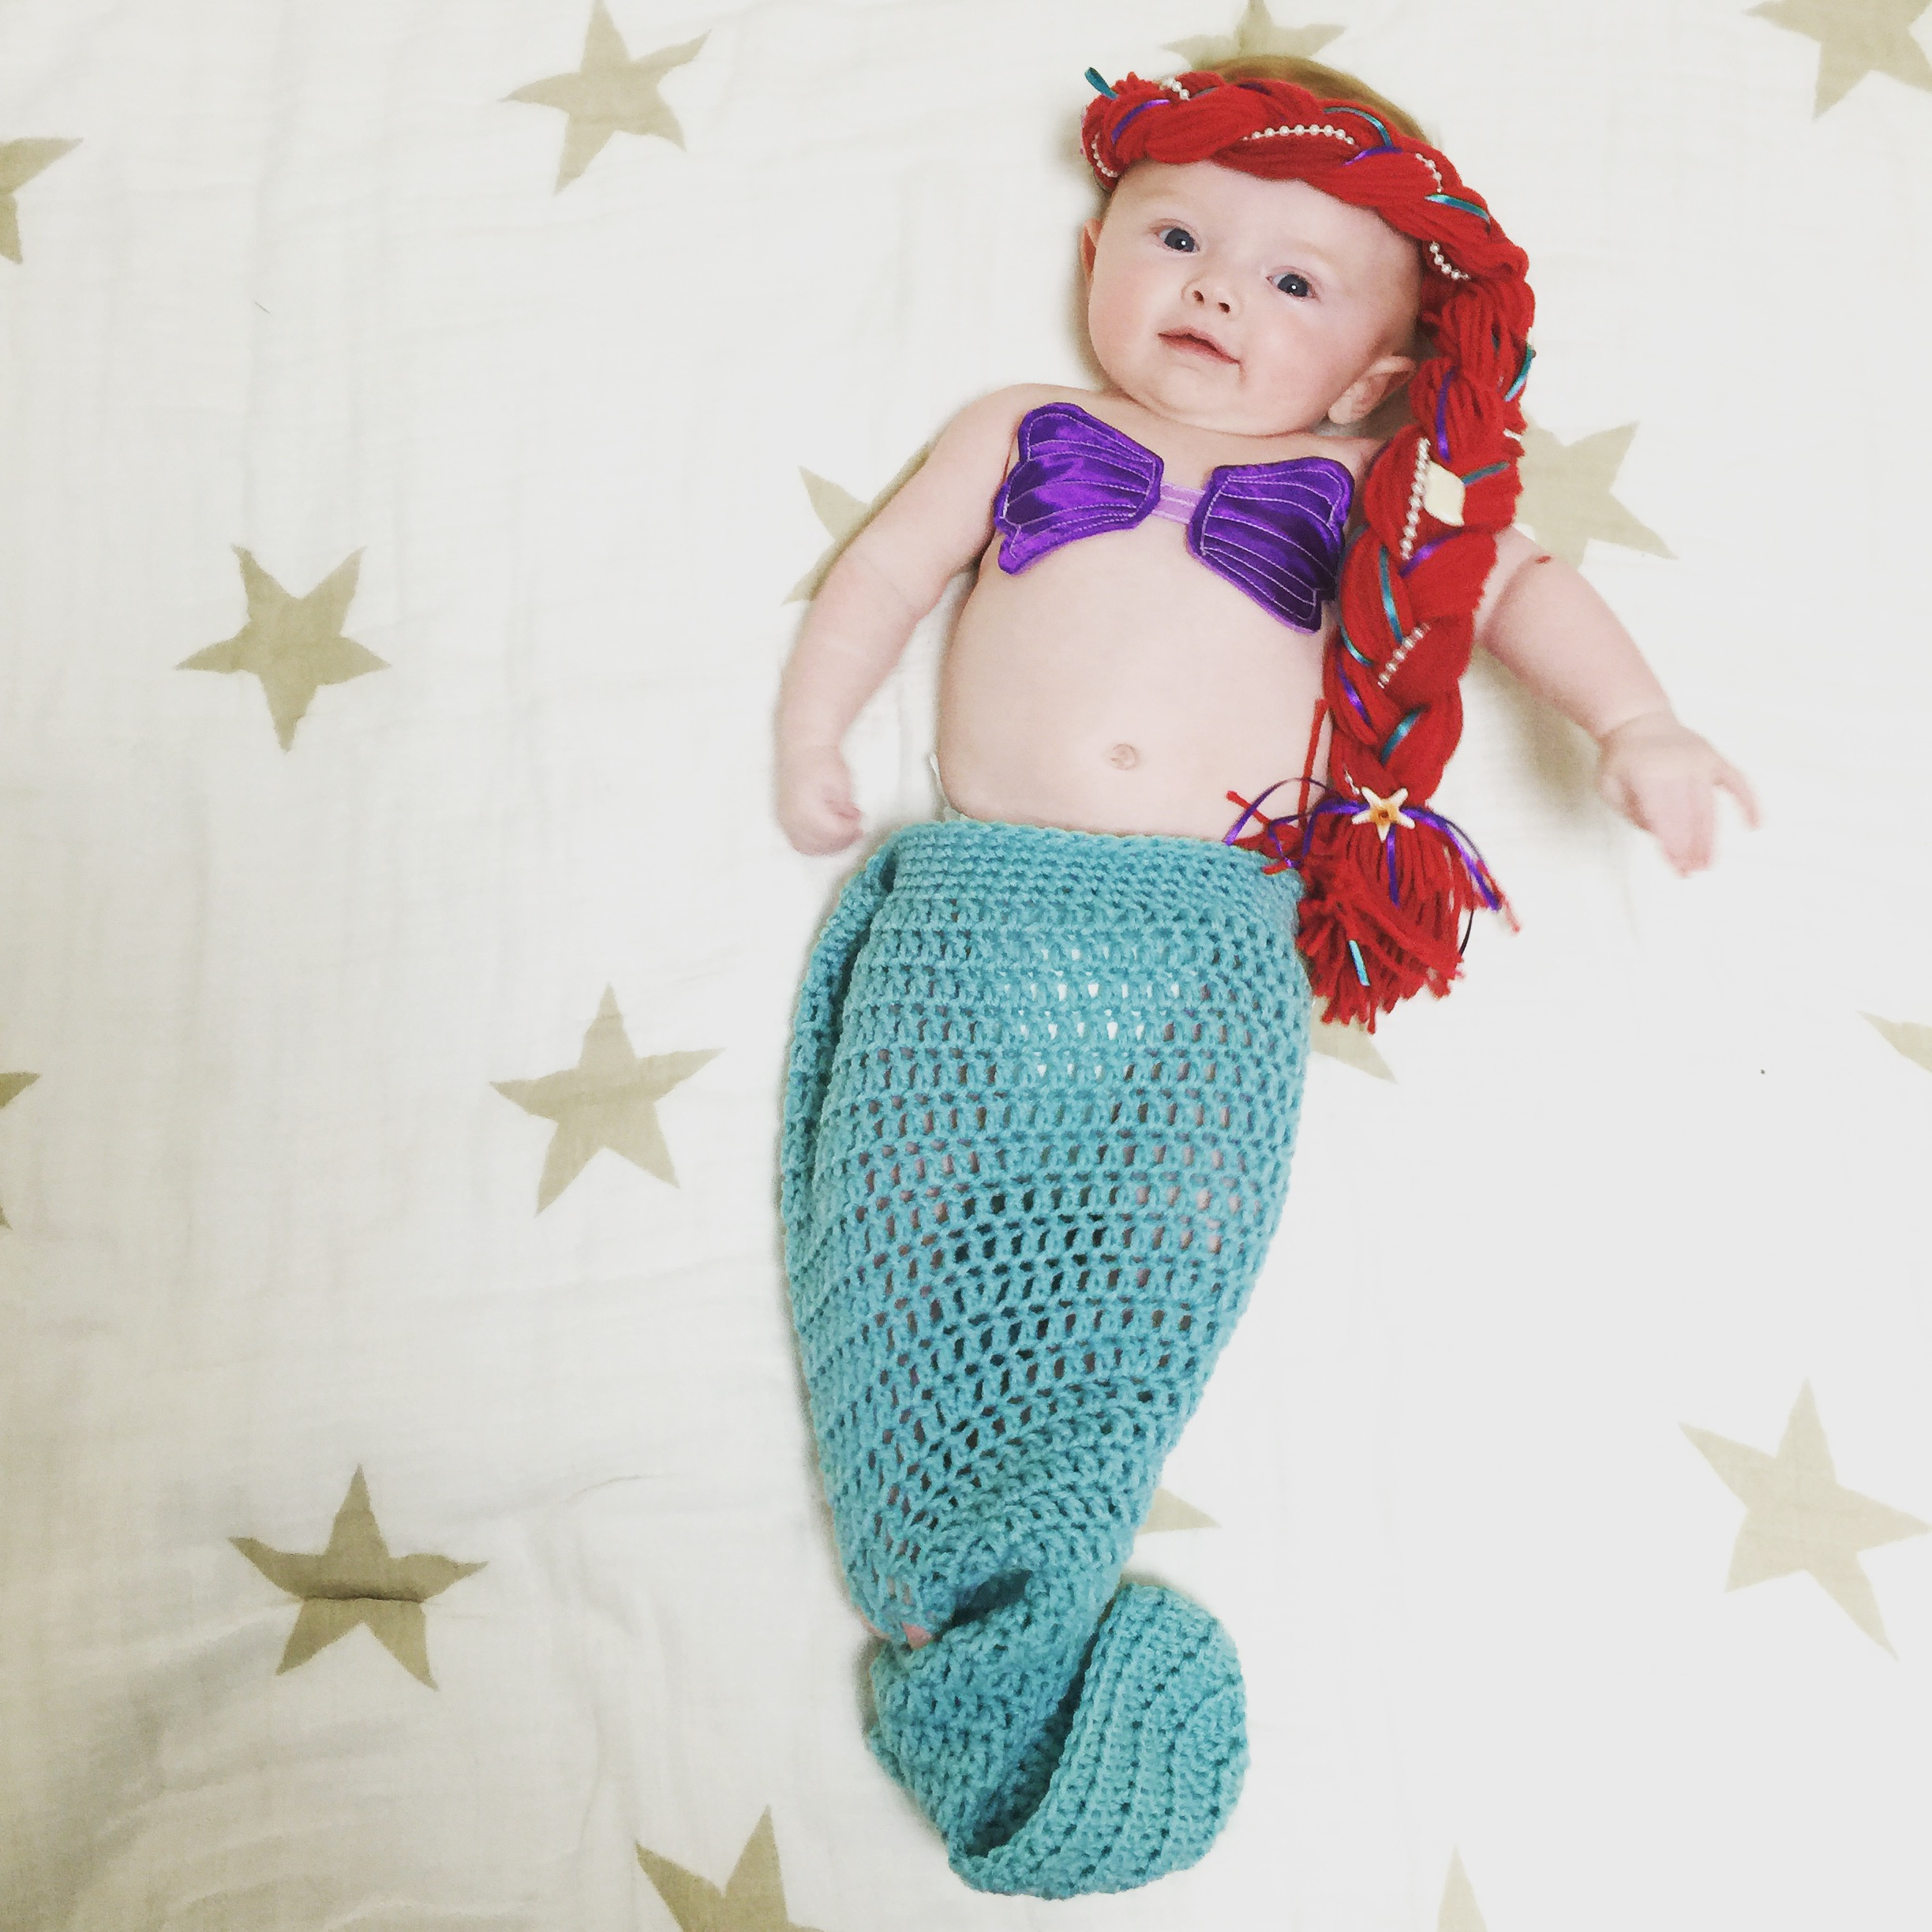 Our little Ariel